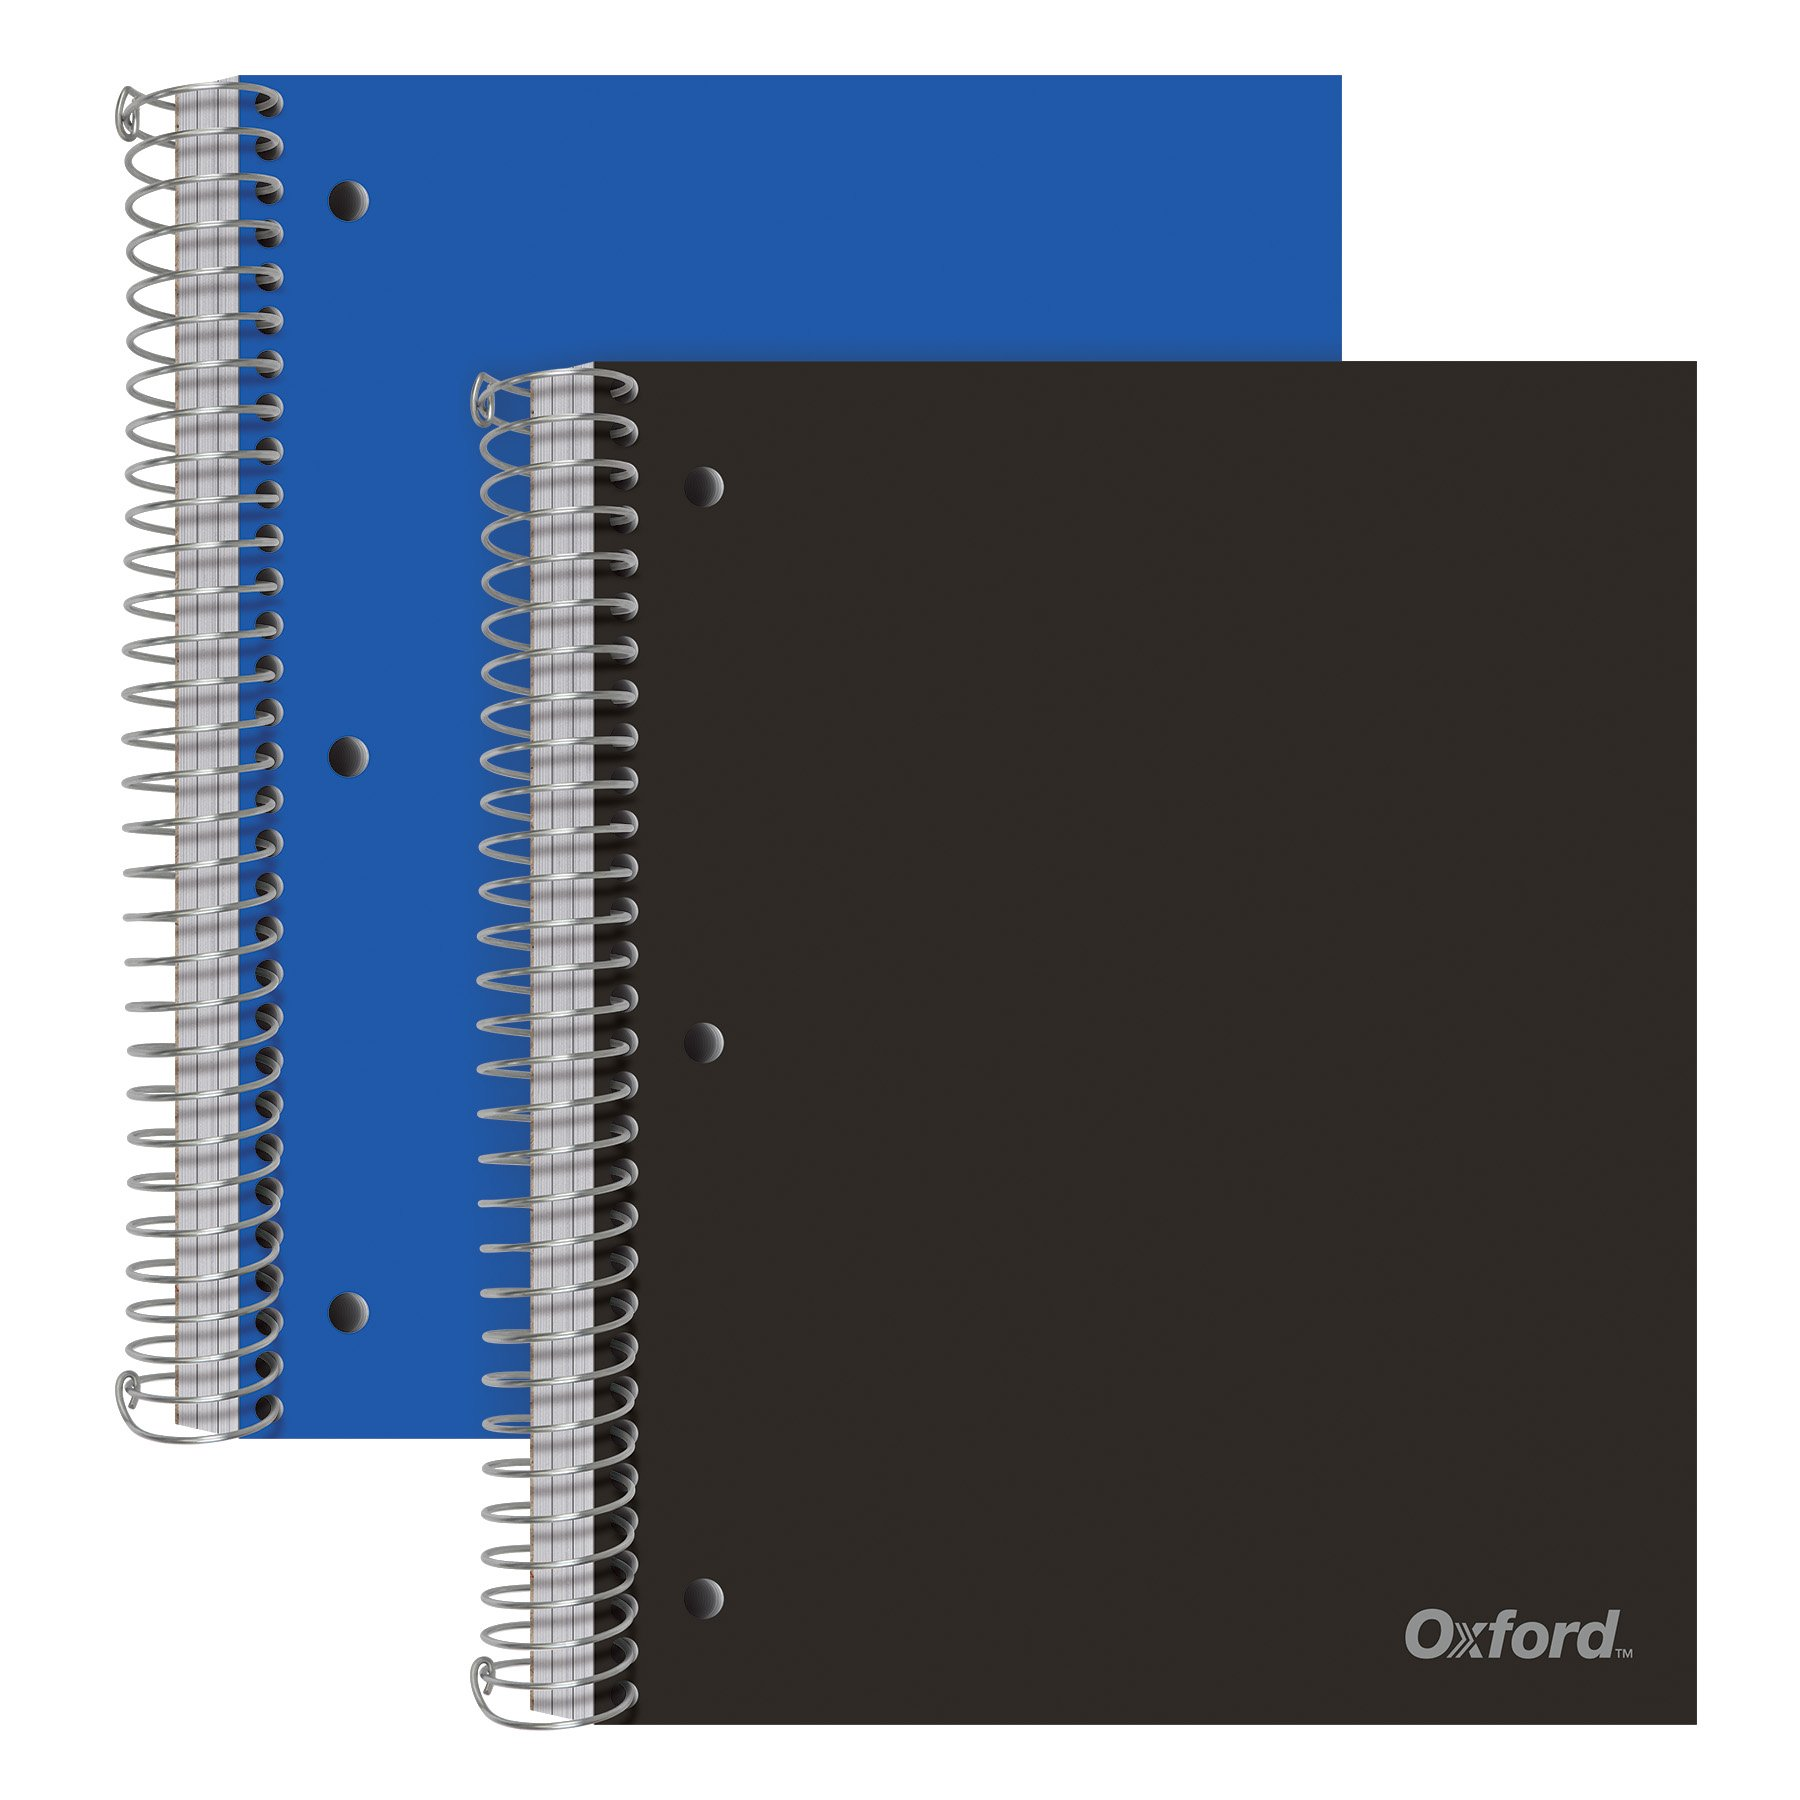 Oxford 3-Subject Poly Notebooks, 9'' x 11'', College Rule, Assorted Color Covers, 150 Sheets, 3 Poly Divider Pockets, 2 Pack (10386)